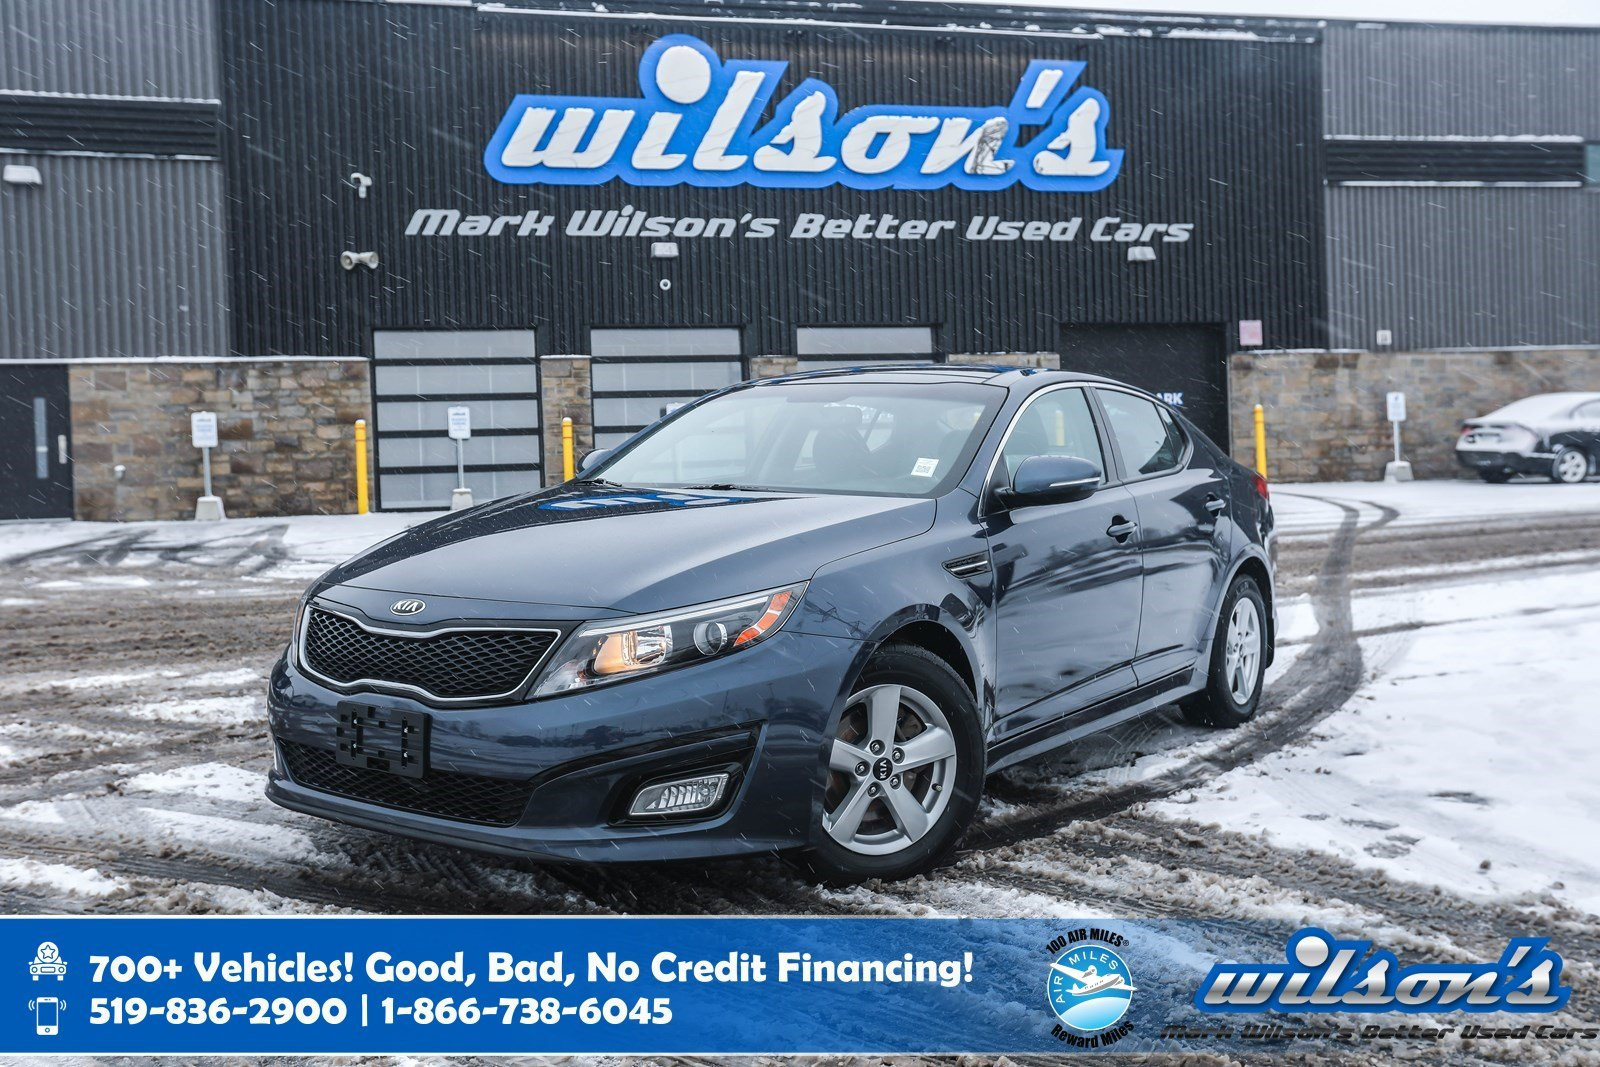 Certified Pre-Owned 2015 Kia Optima LX, Sunroof, Rear Camera, Heated Seats, Cruise Control and more!